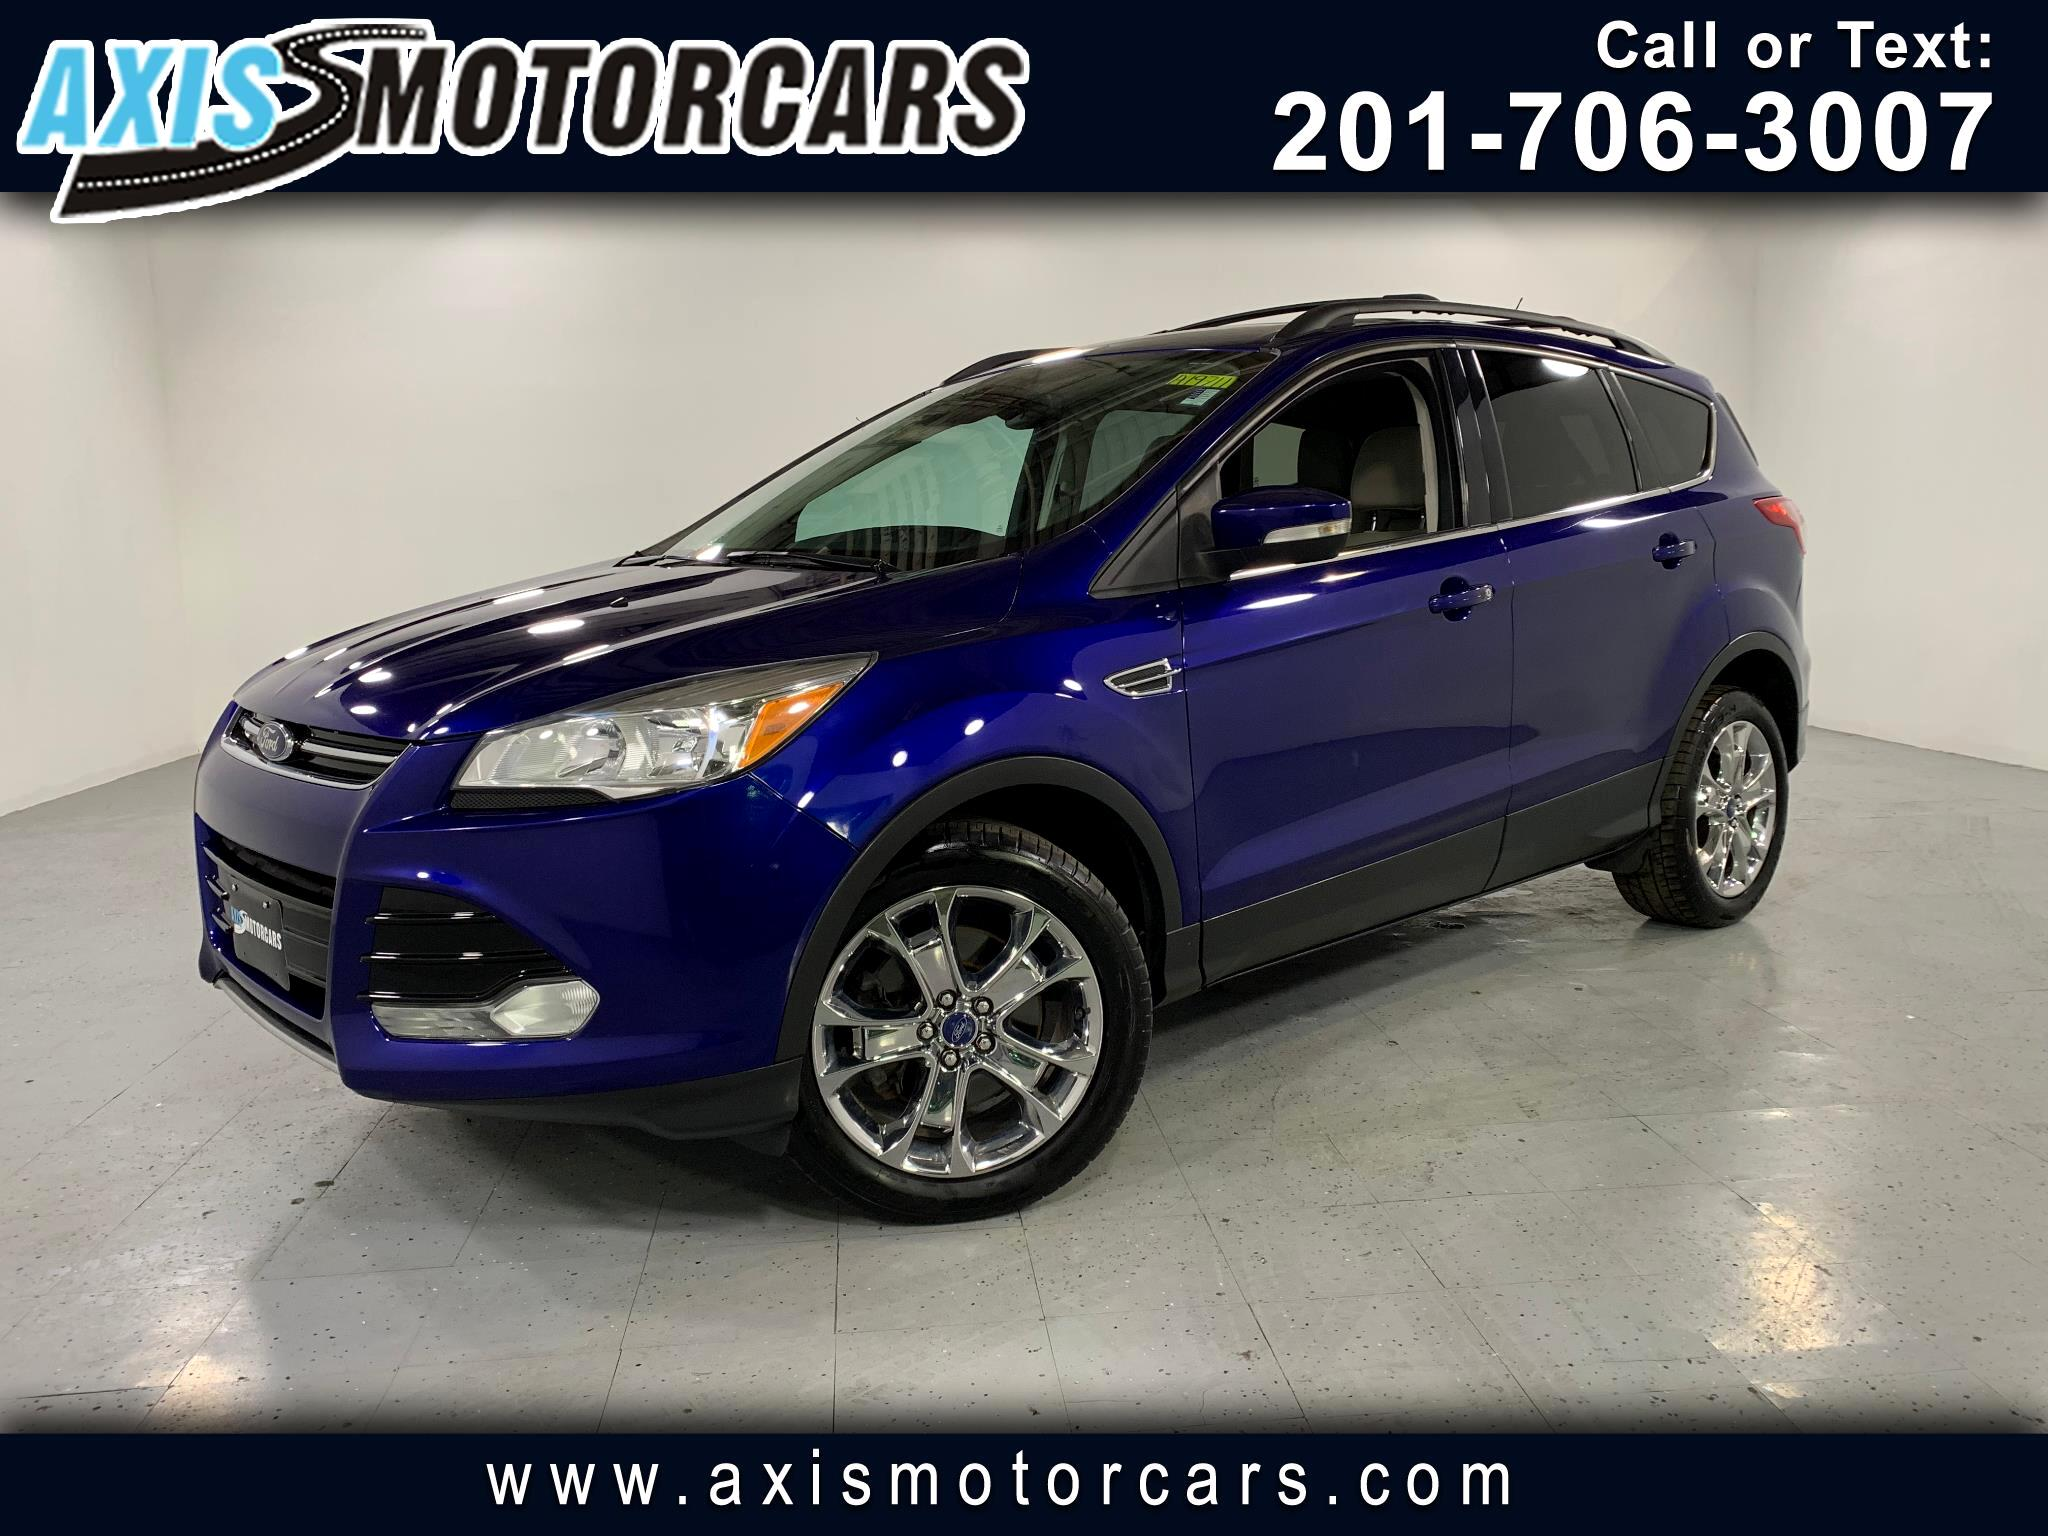 2013 Ford Escape SEL w/Navigation Panoramic Roof